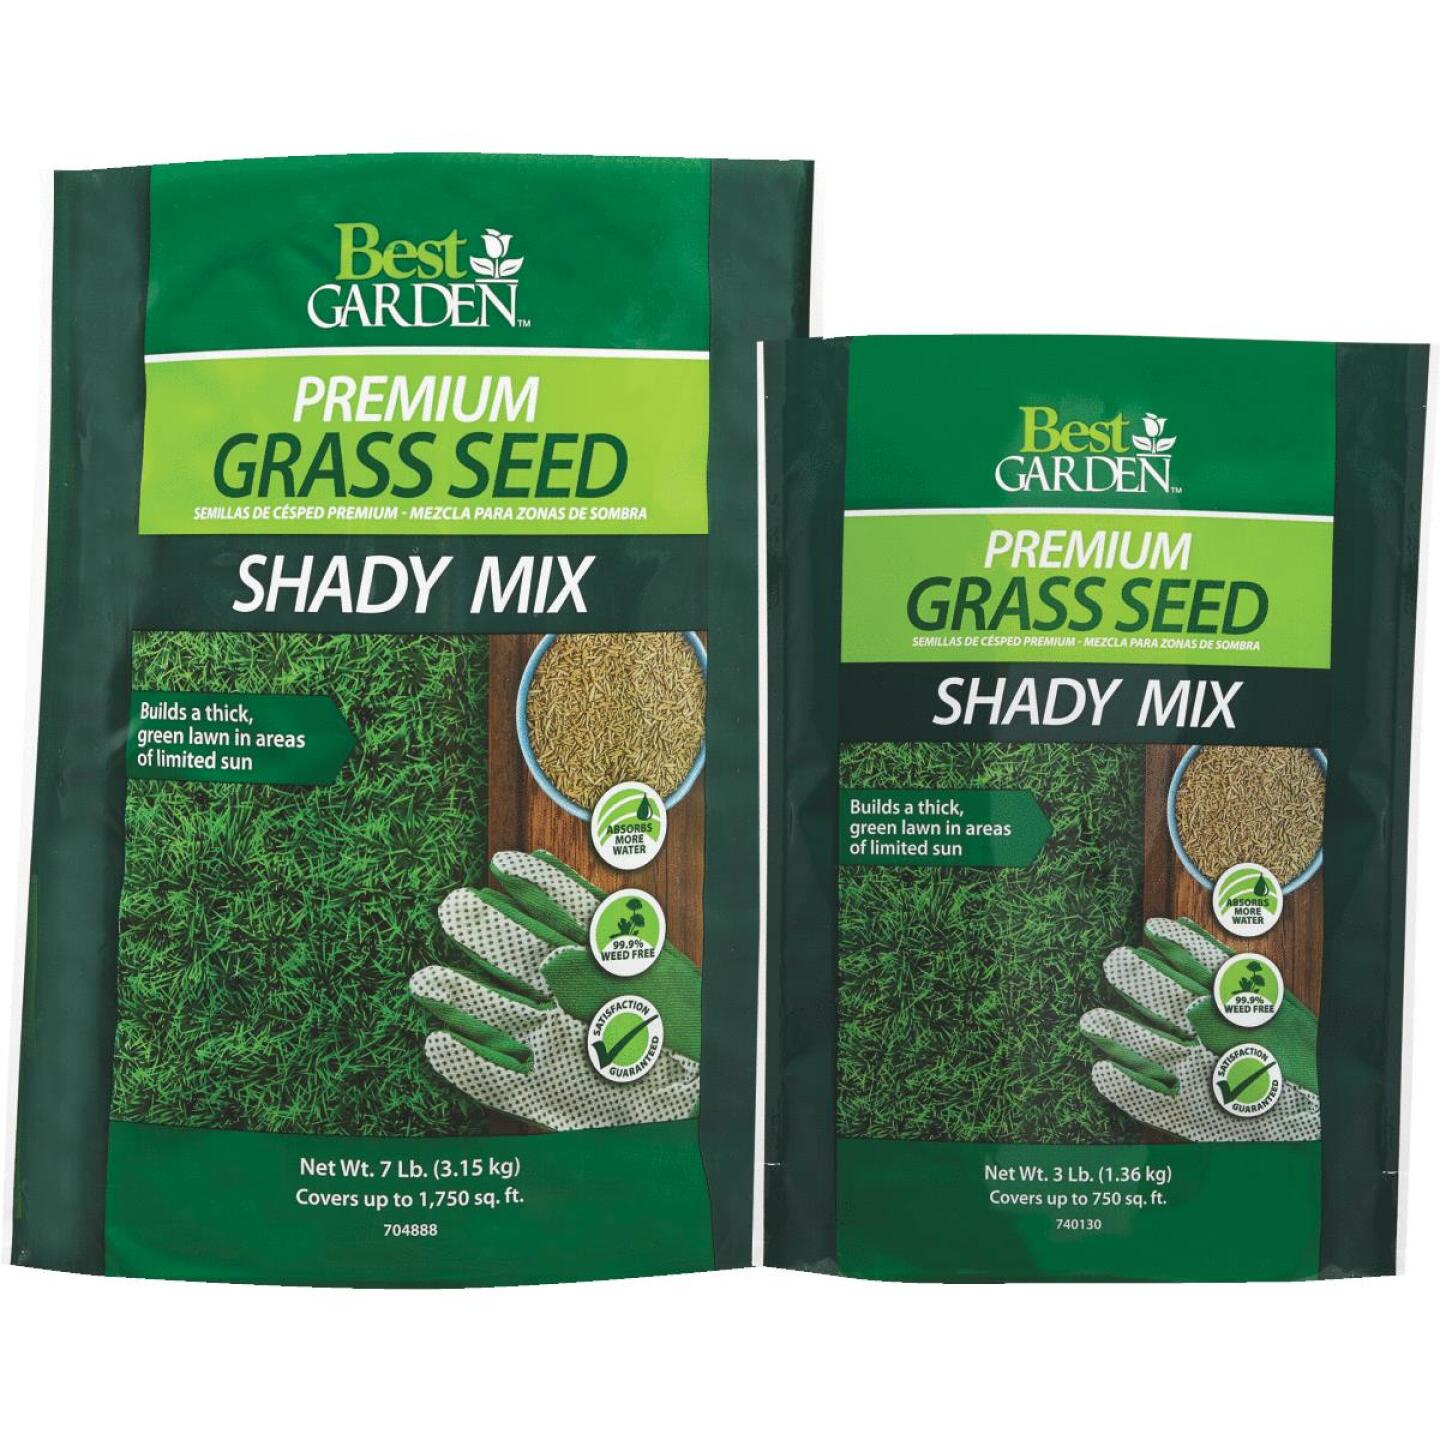 Best Garden 3 Lb. 900 Sq. Ft. Coverage Shady Grass Seed Image 2